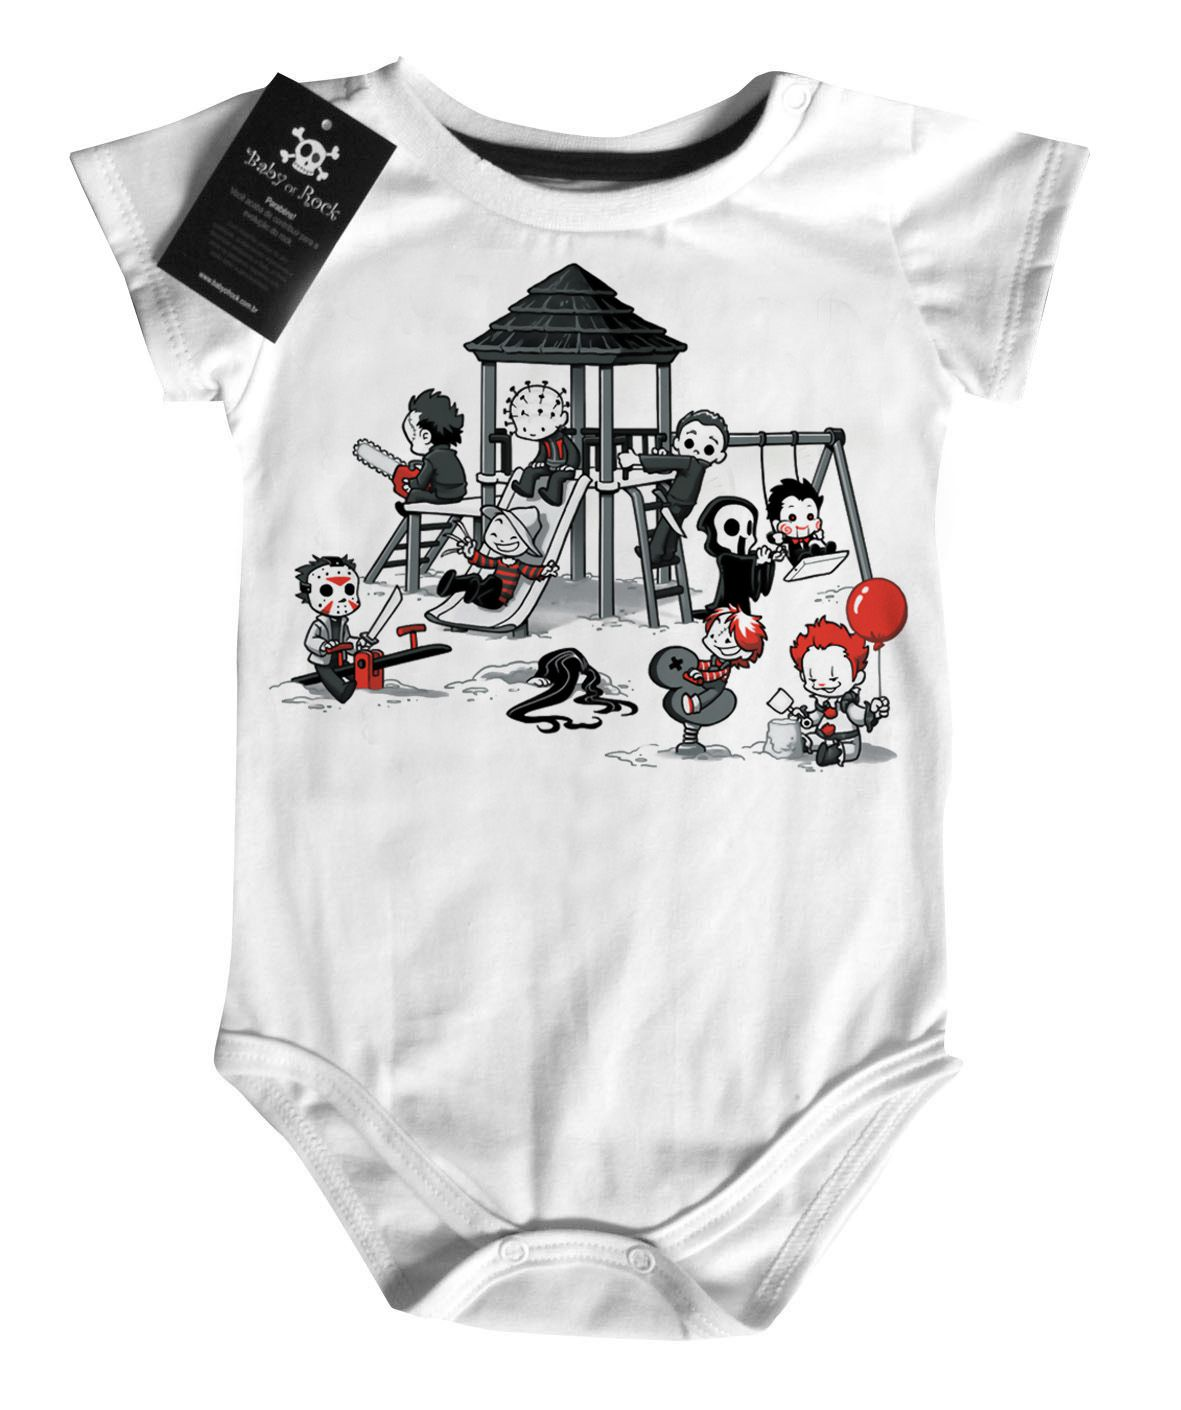 Body Bebe ou Camiseta Infantil Park Terror Cute - White  - Baby Monster S/A